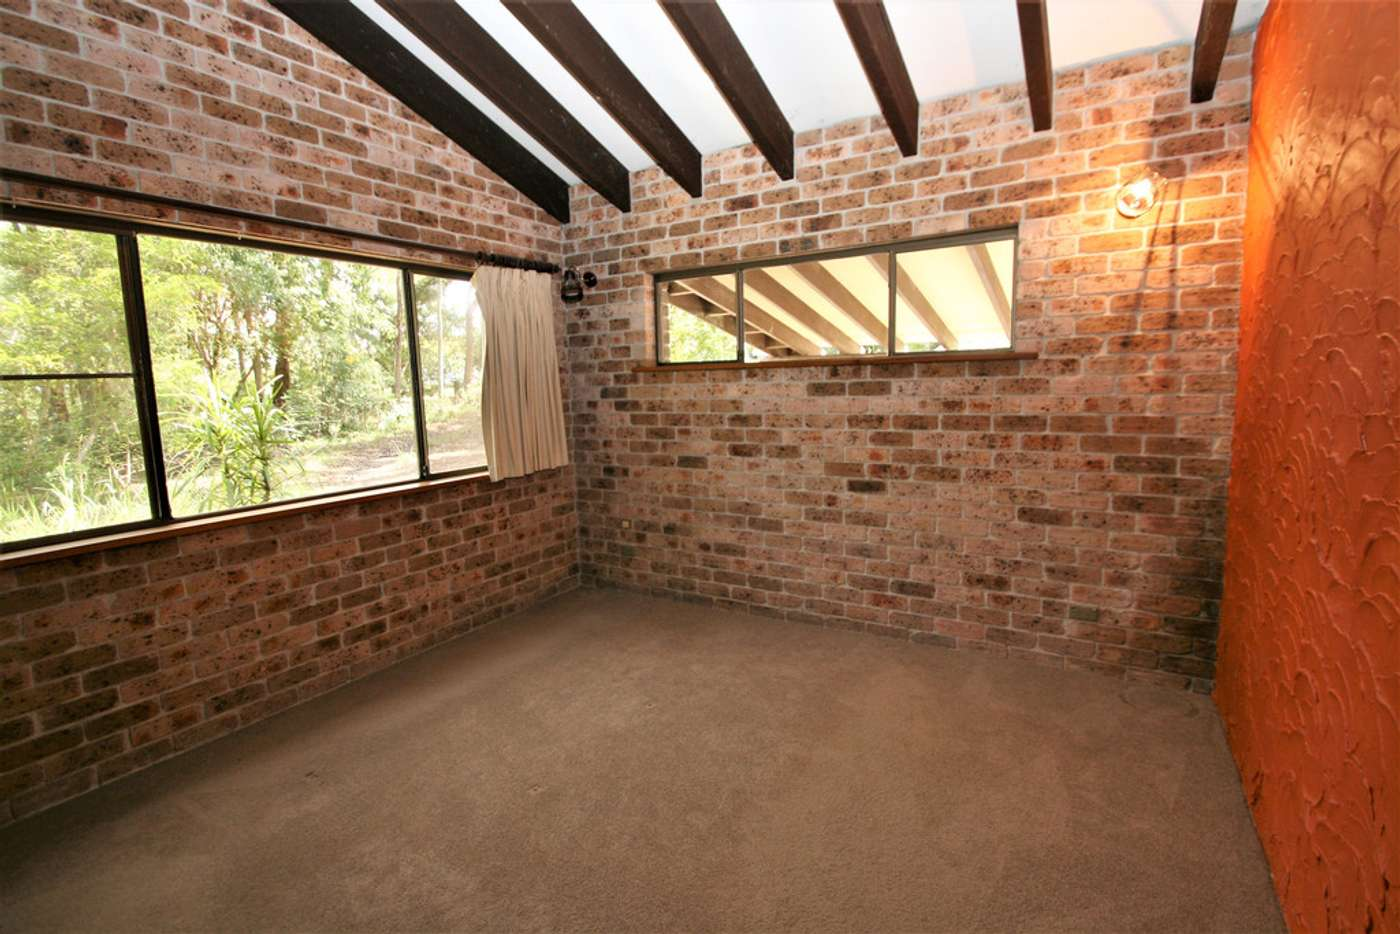 Seventh view of Homely house listing, 24 Second Ridge Road, Smiths Lake NSW 2428